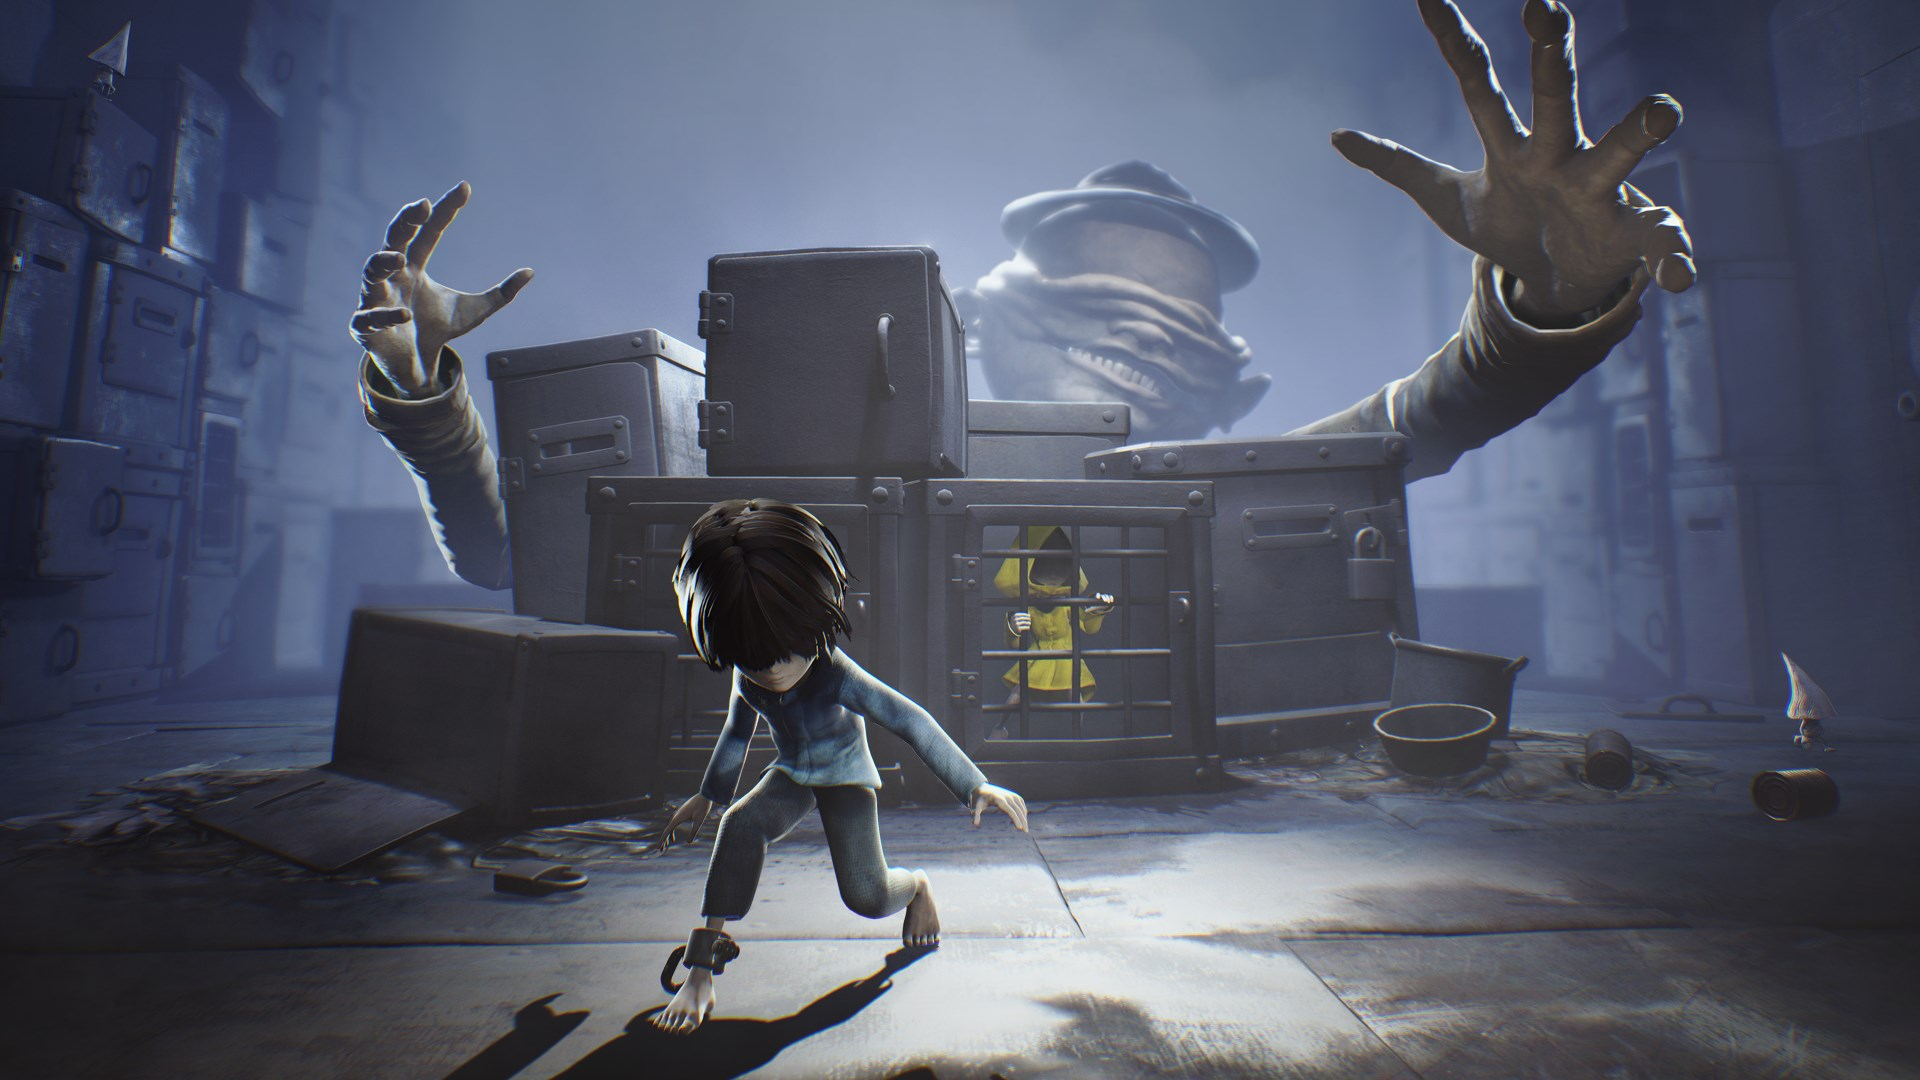 Little Nightmares. What kind of girl?